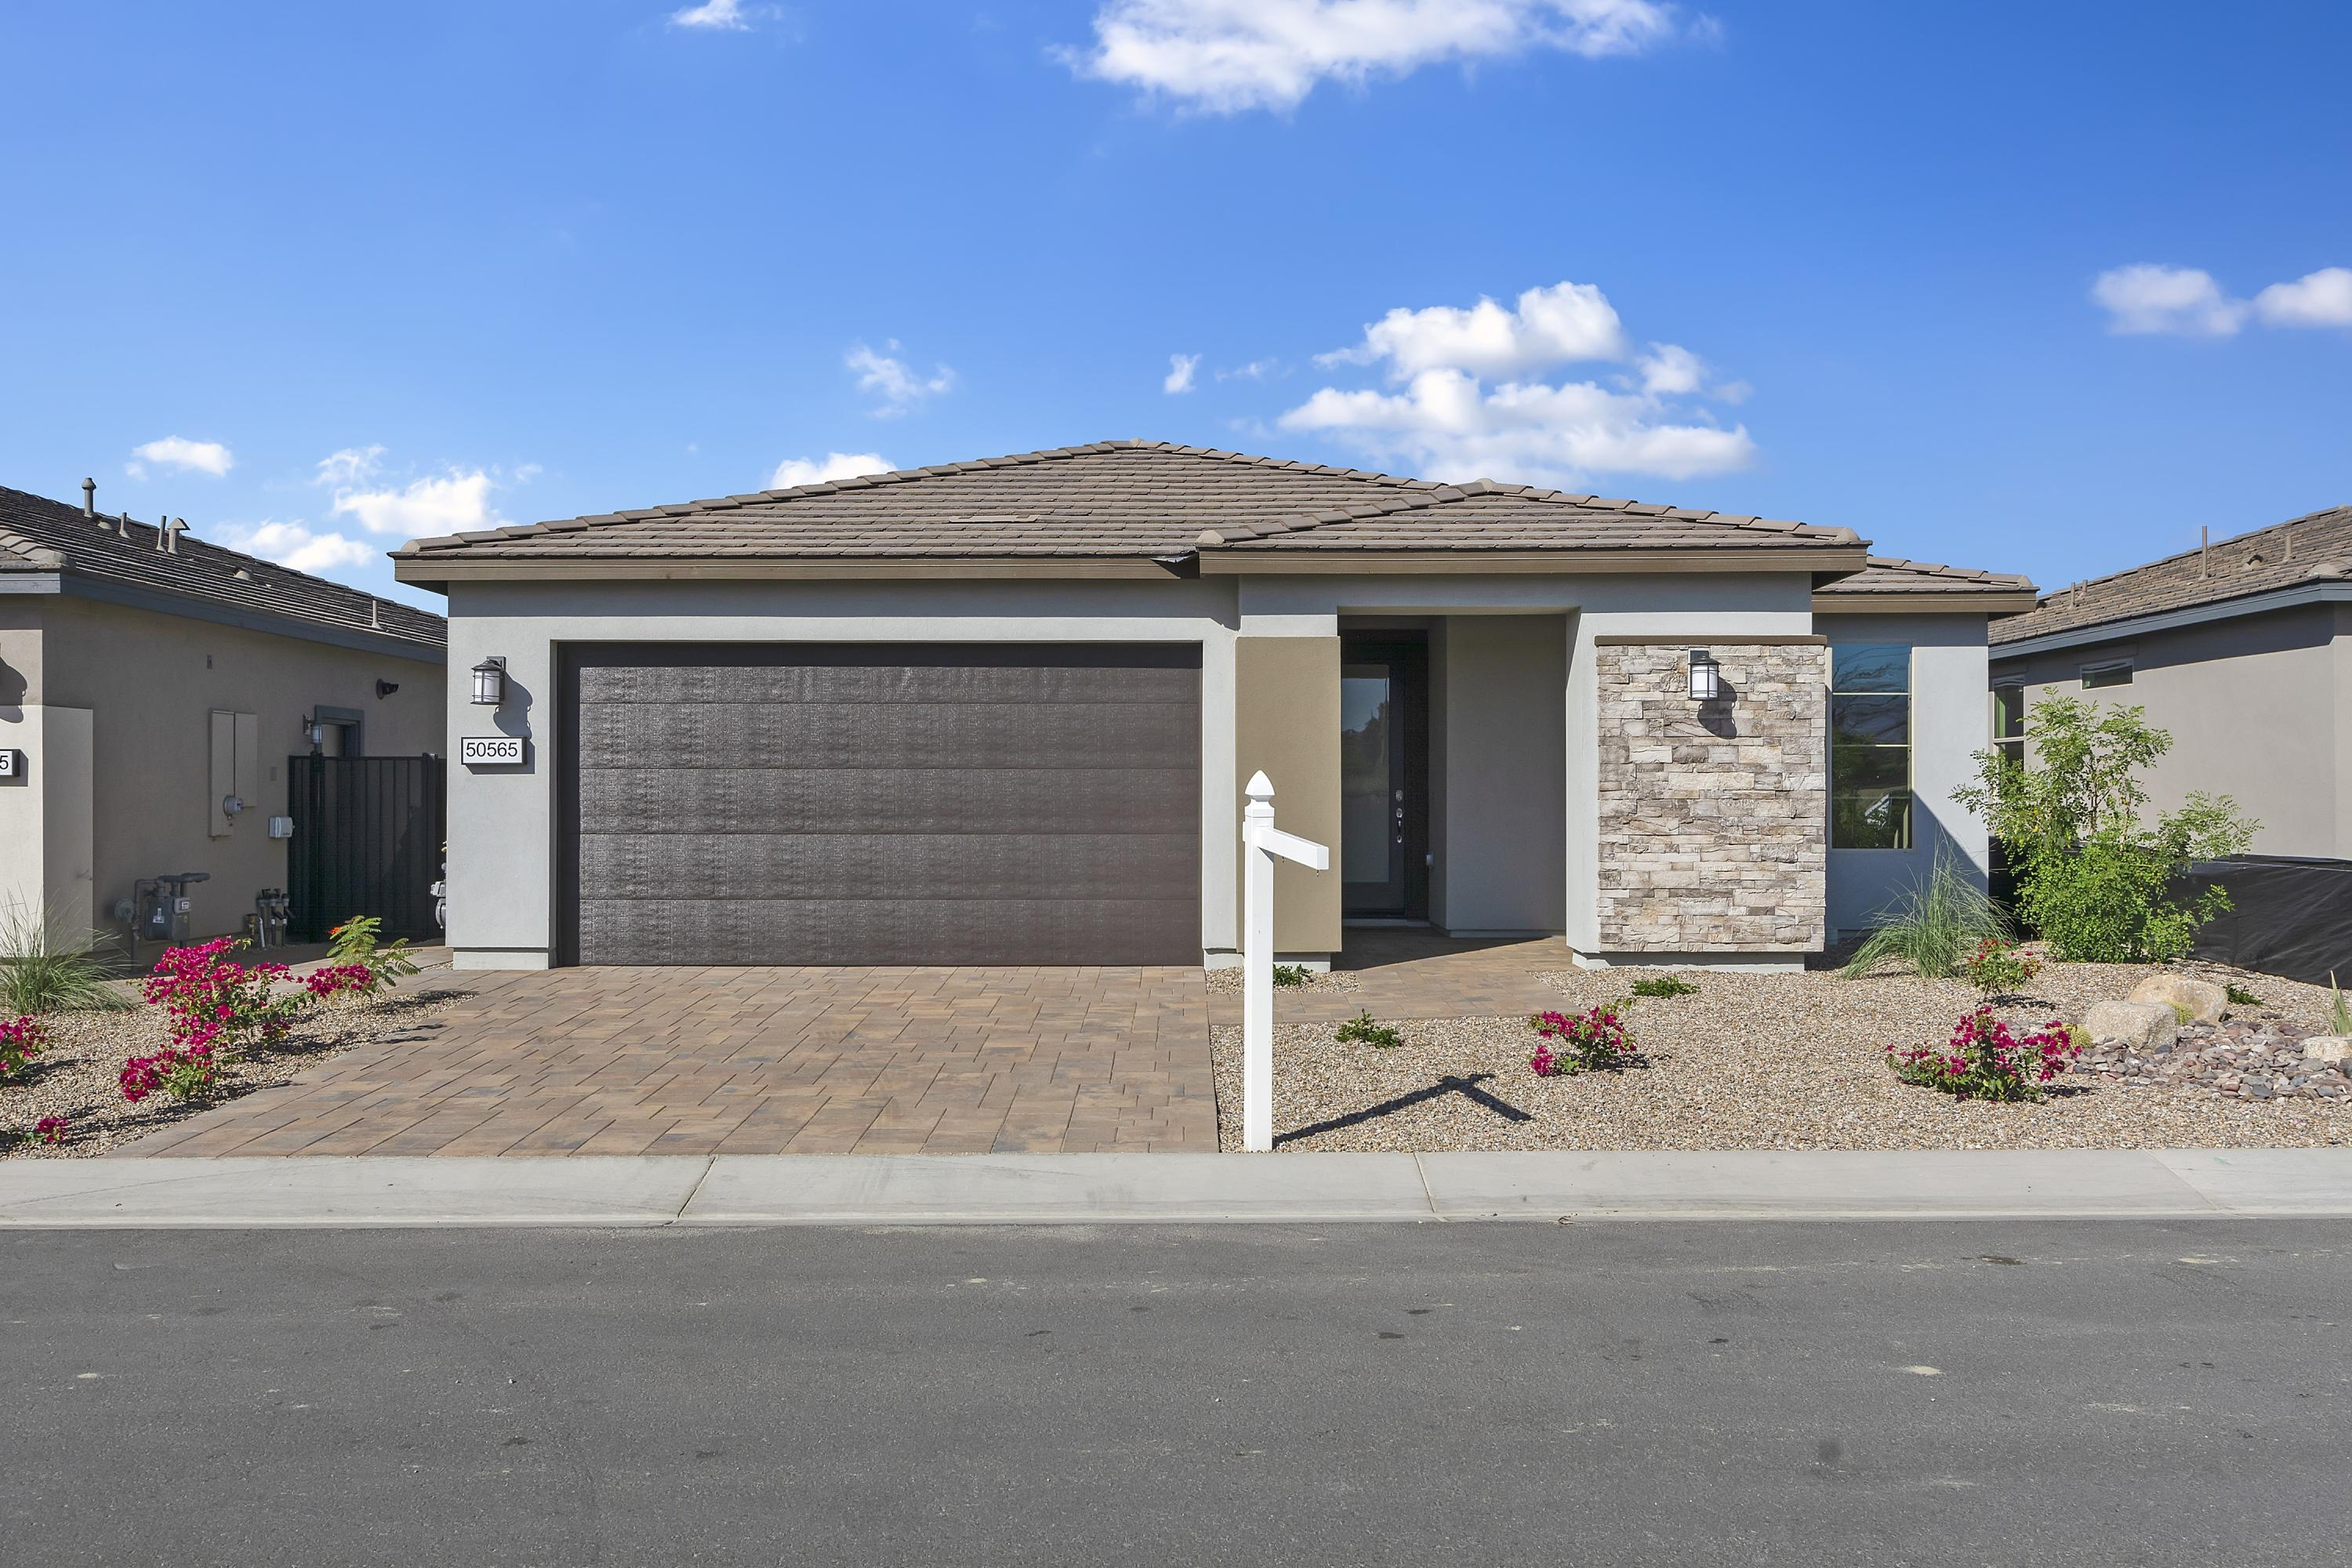 Photo of 50565 Monterey Canyon (Lot 5028) Drive, Indio, CA 92201